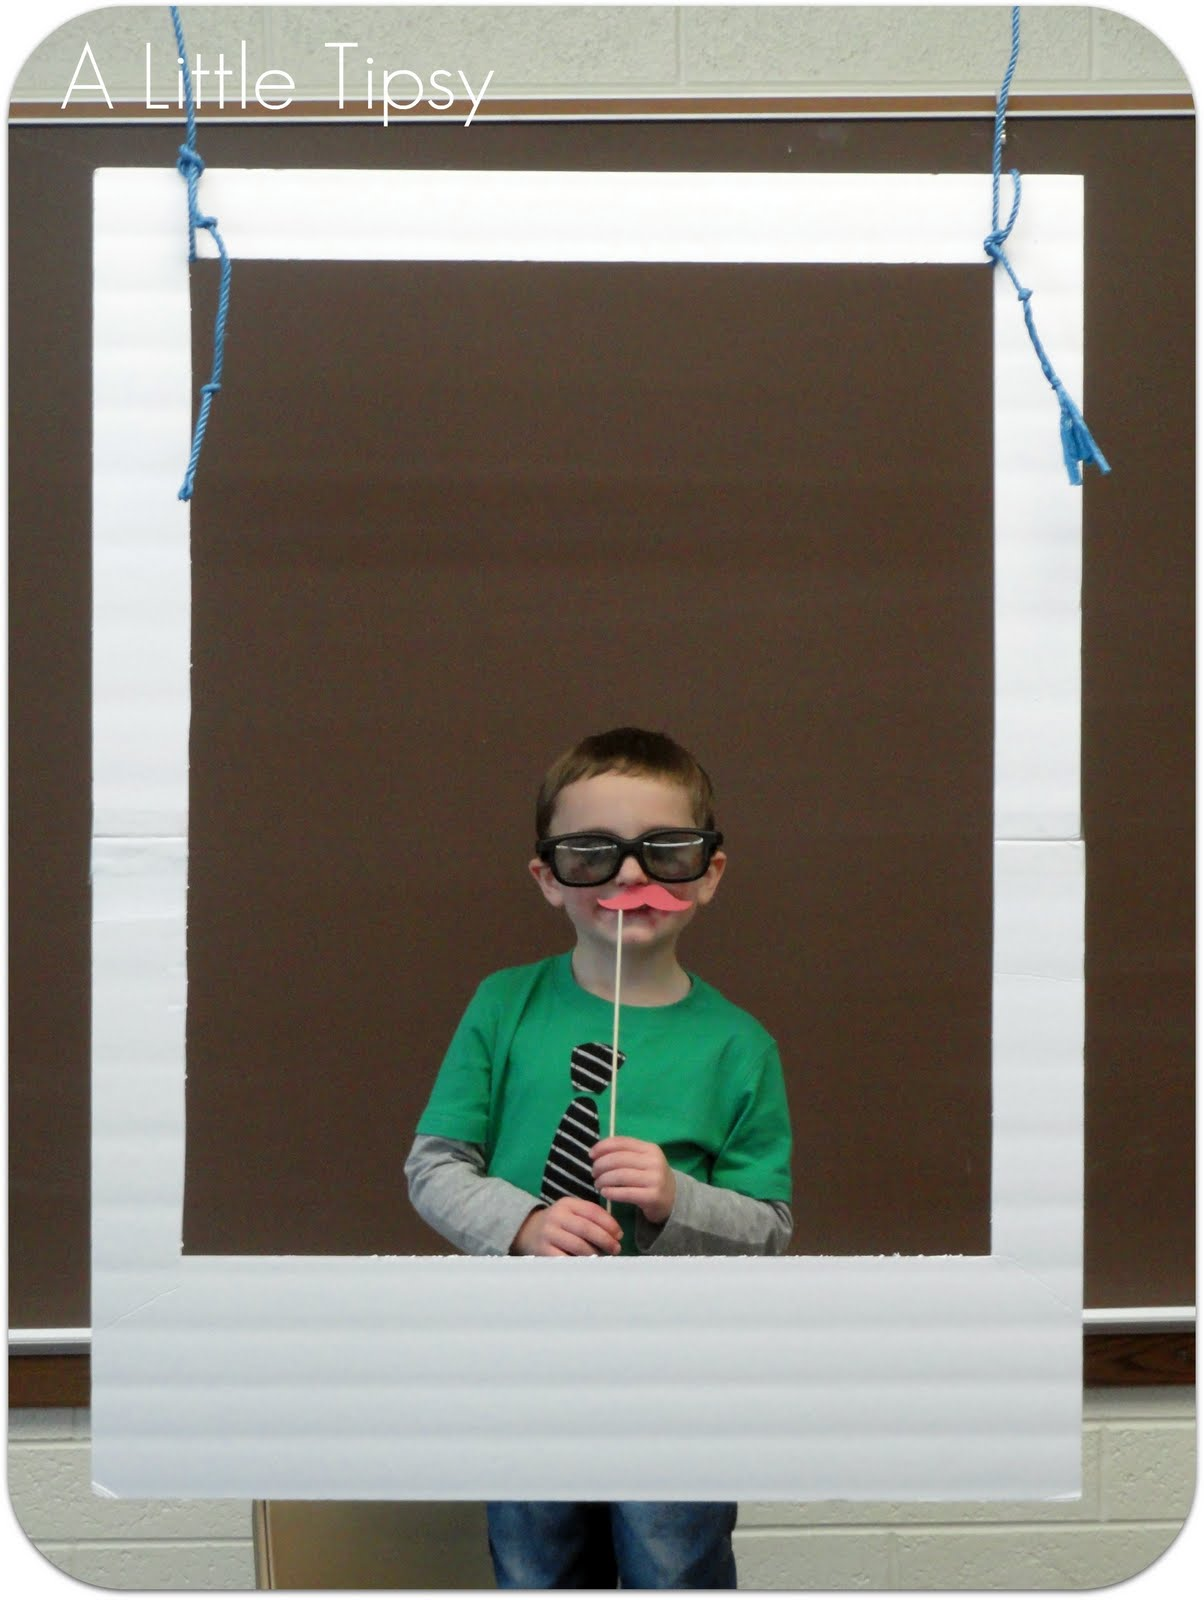 Diy photo booth a little tipsy diy photo booth solutioingenieria Images